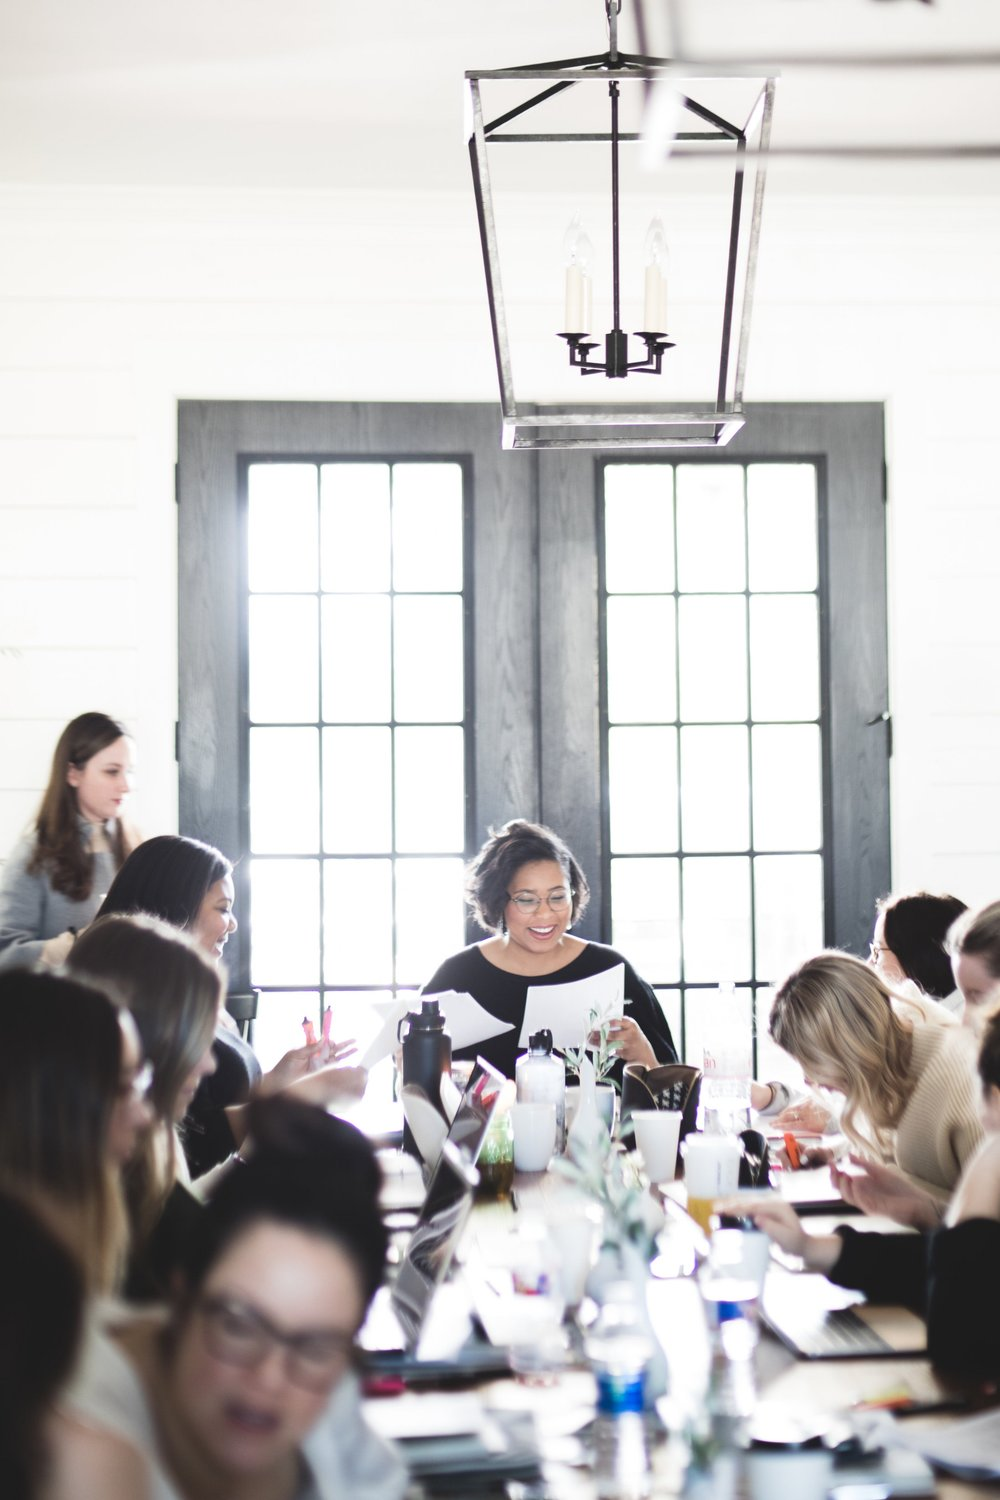 Photographs by Molly Thrasher from the Spring 2018 Editor's Course Retreat at the Fixer Upper Barndominium